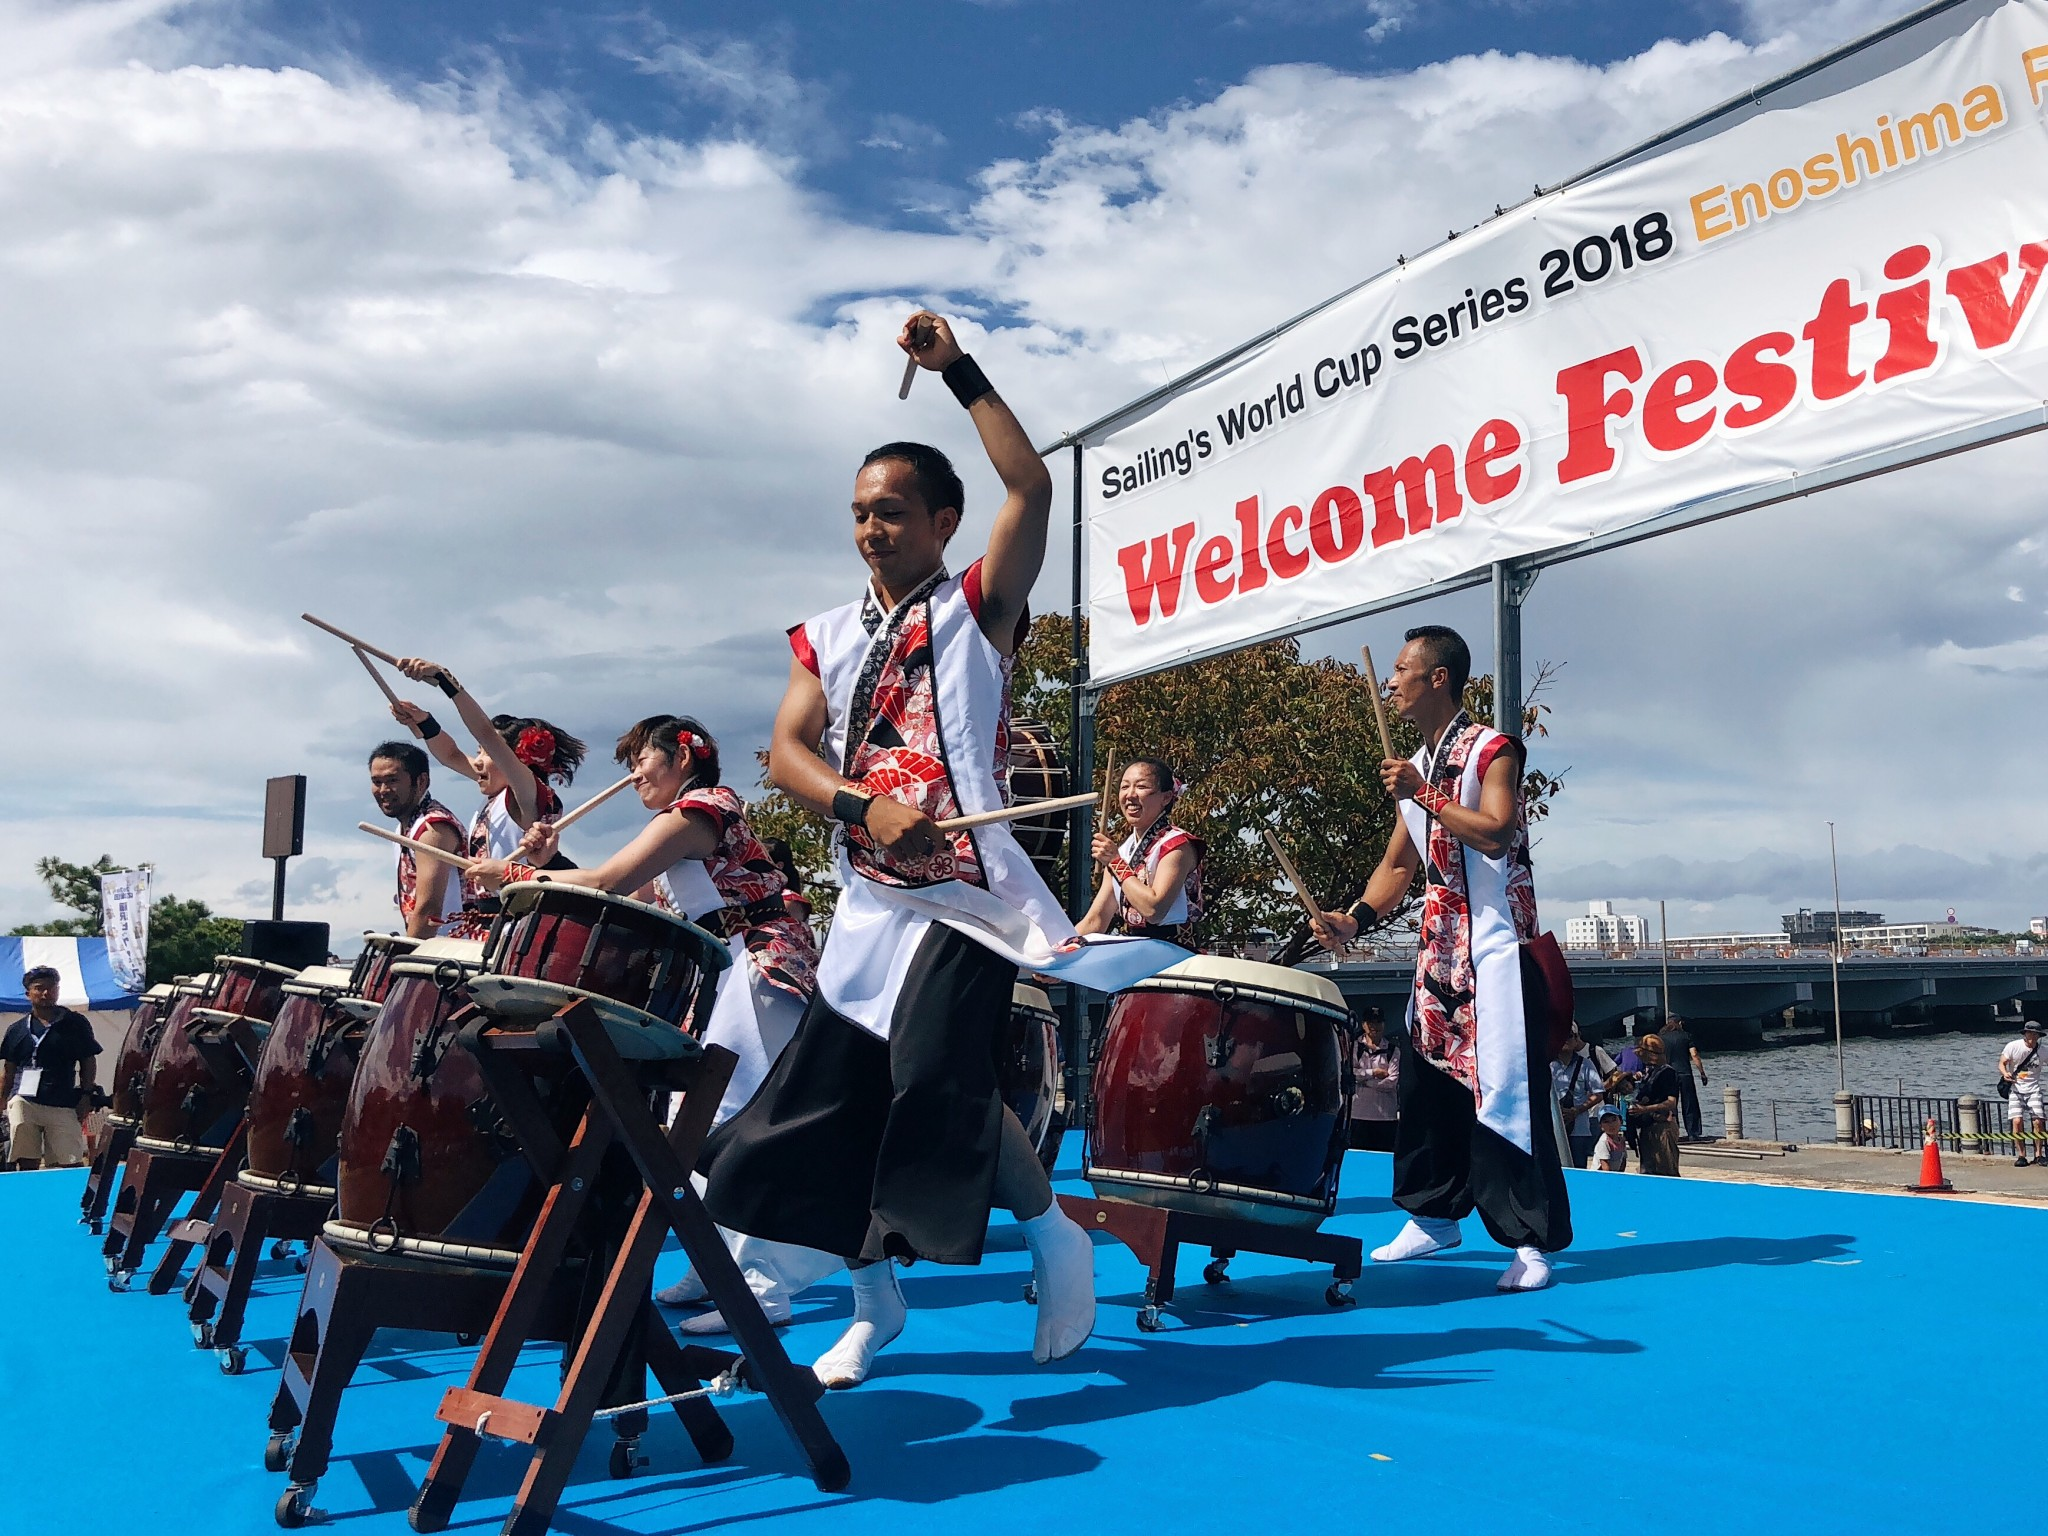 Attending the Sailing's World Cup Series 2018 – Enoshima Welcome Festival